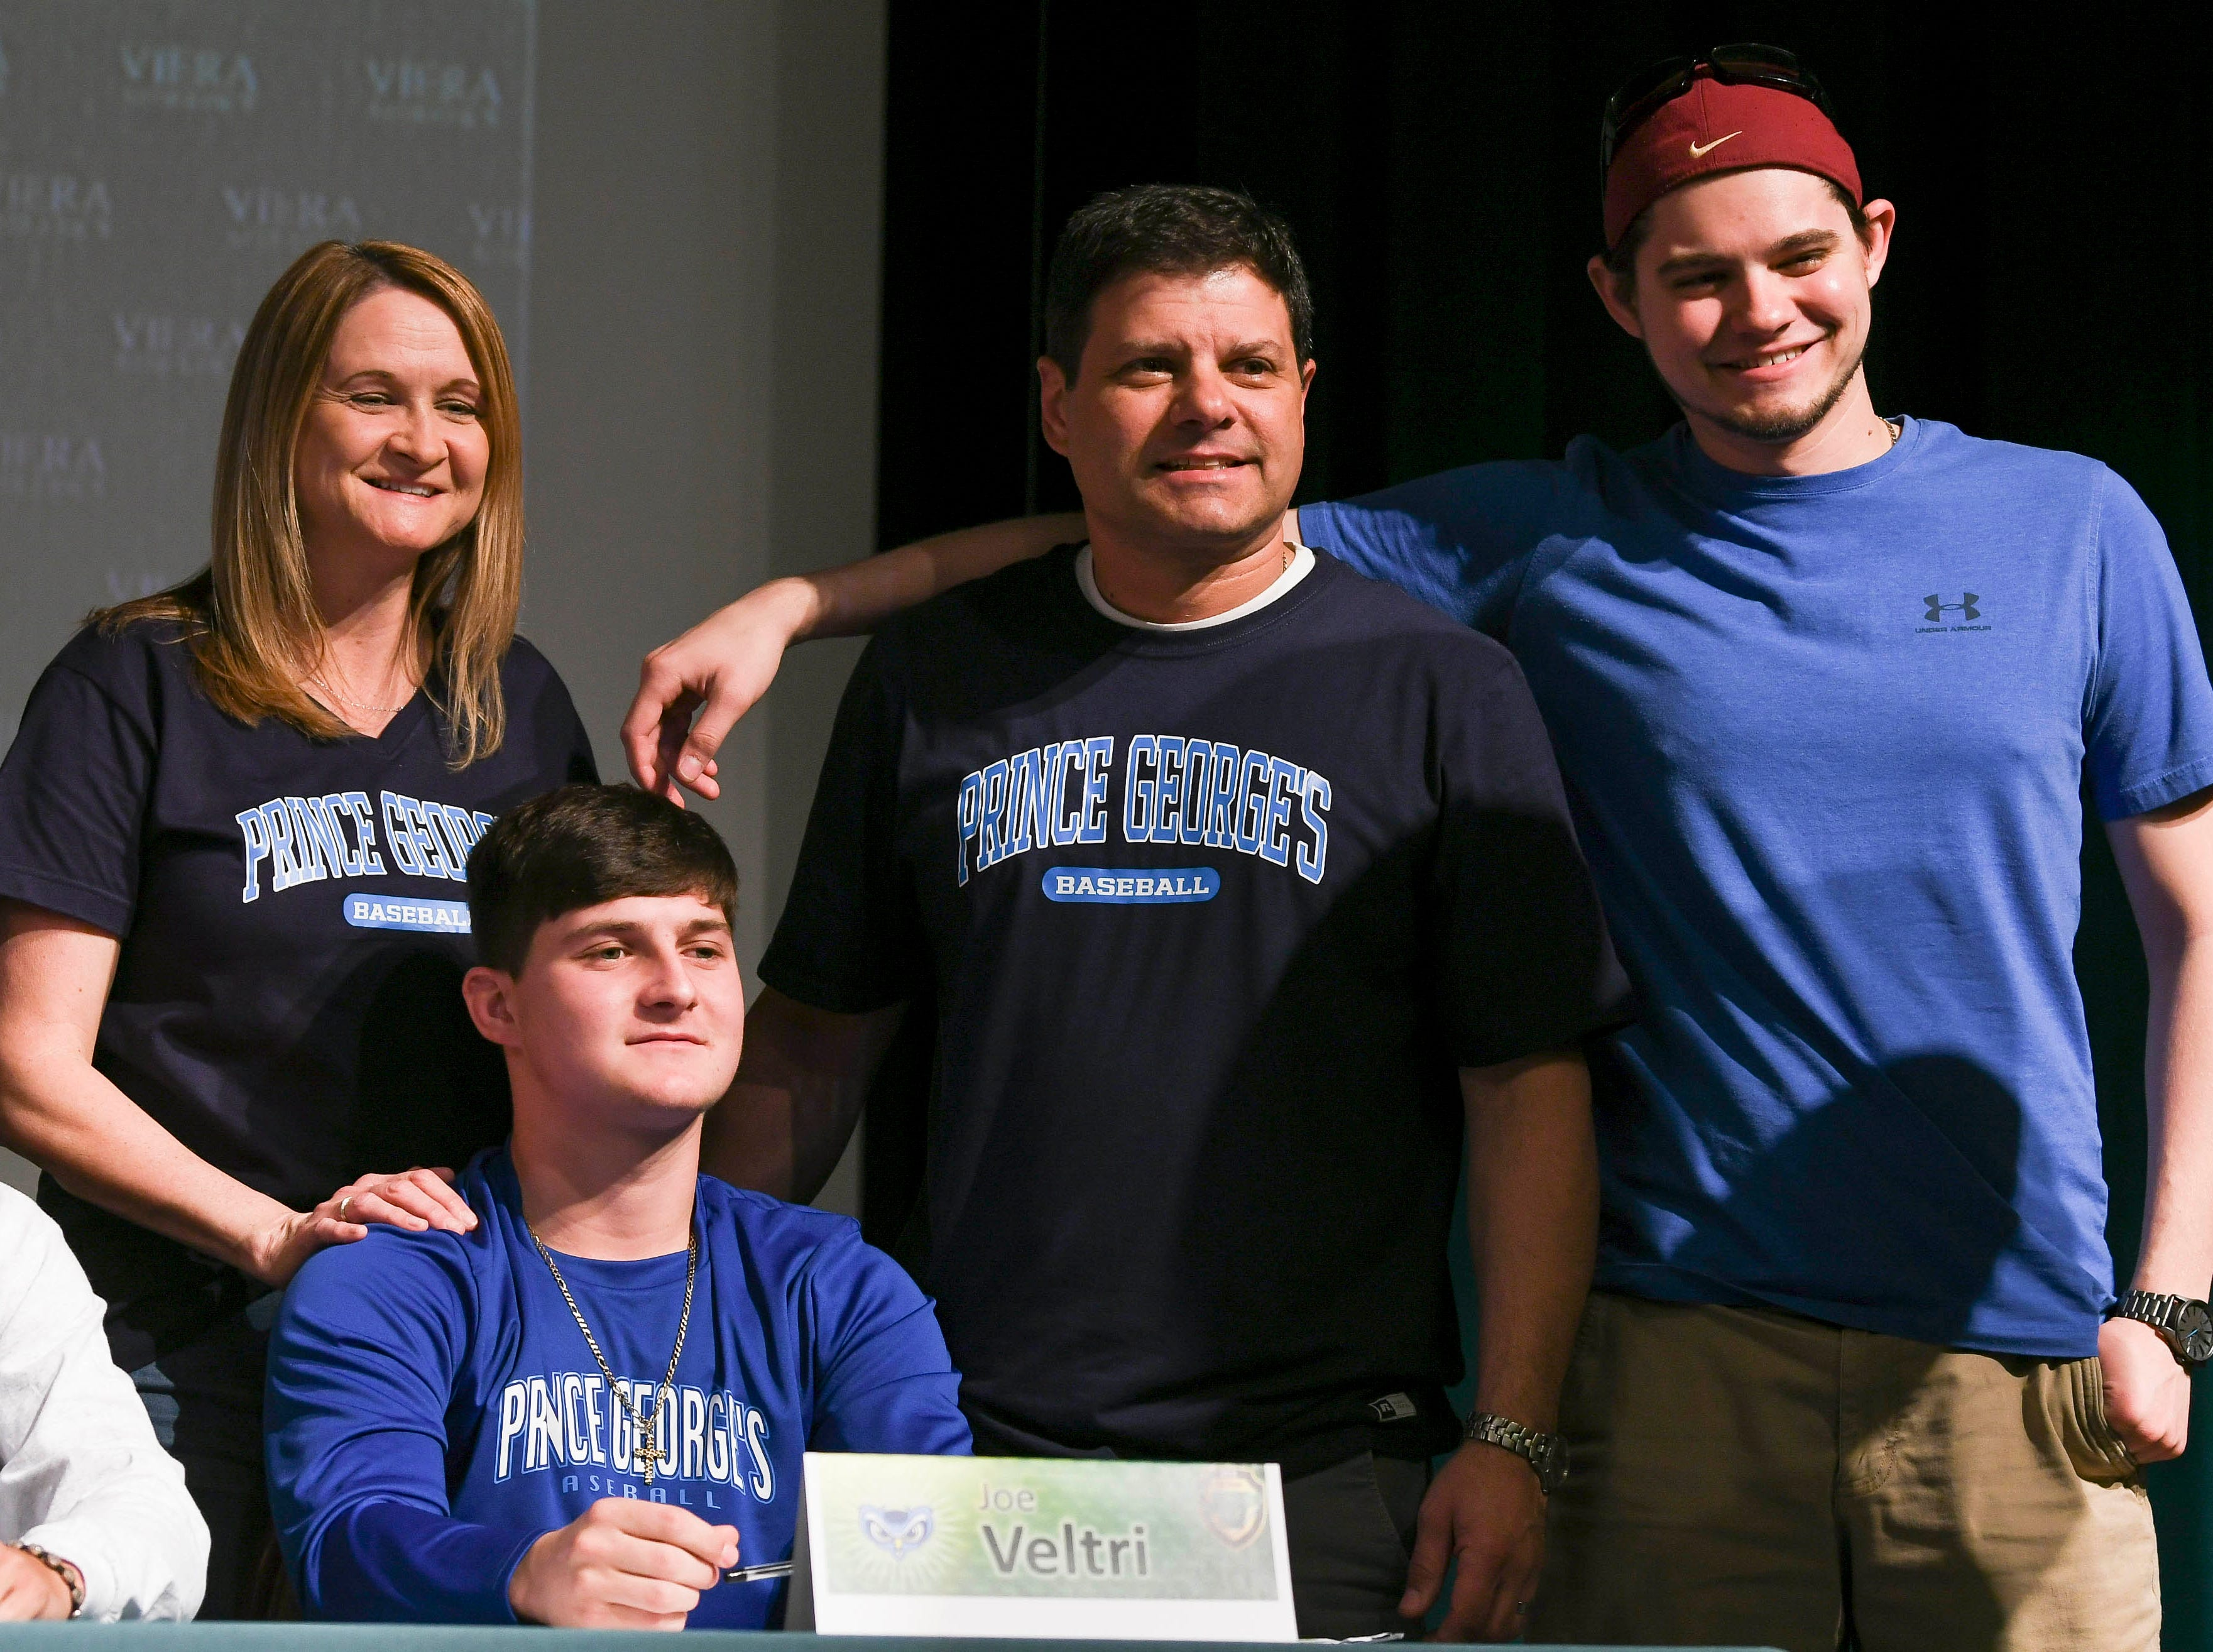 Viera High senior Joe Veltri gets his picture taken after signing his letter of intent Wednesday on National Signing Day.